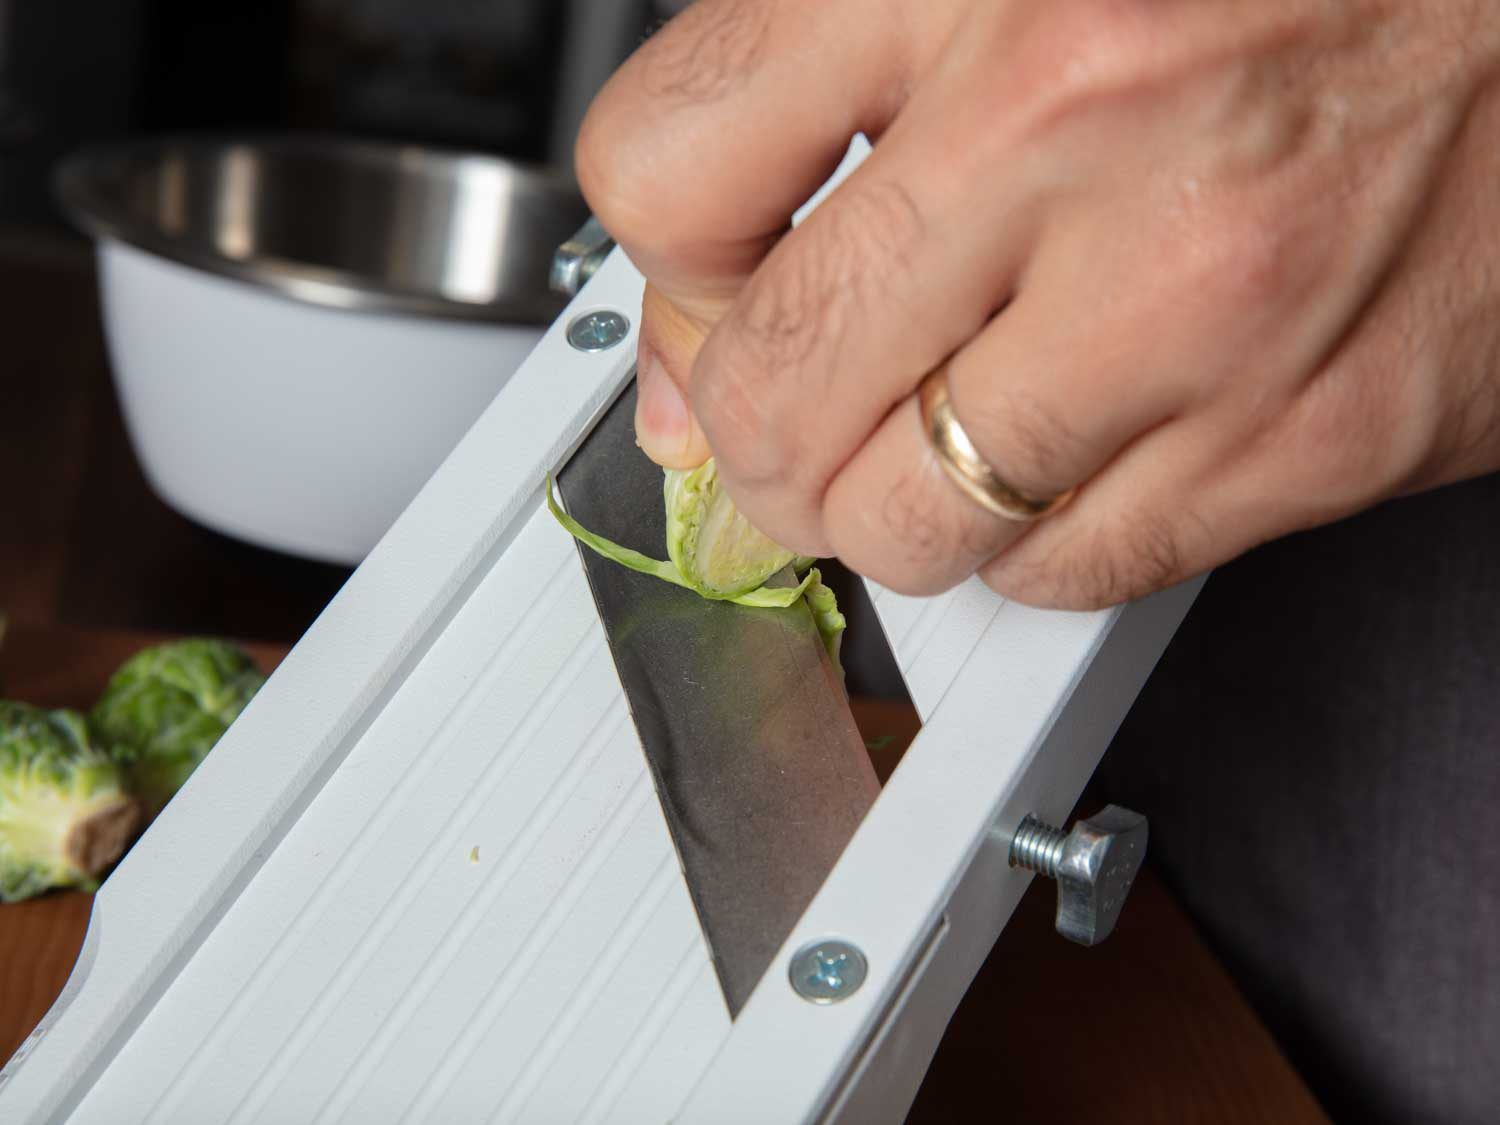 Thinly slicing Brussels sprouts on a mandoline slicer